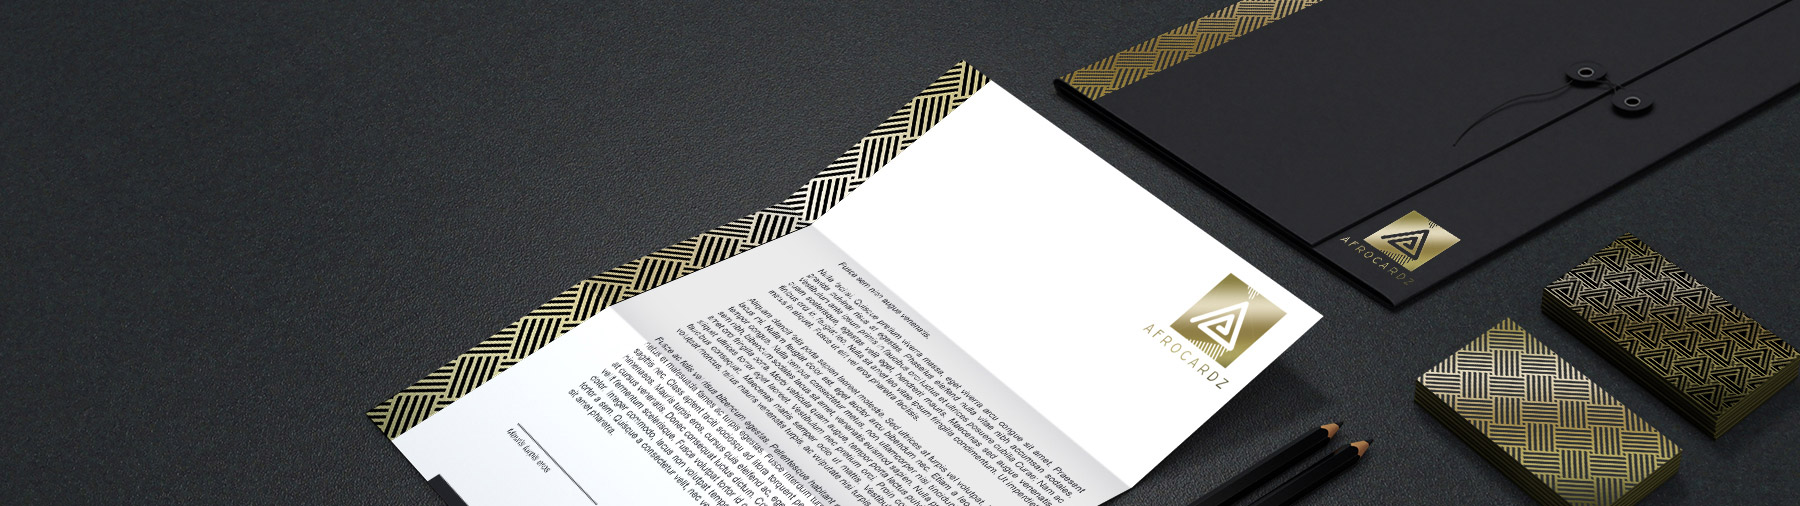 Bespoke Corporate Stationery